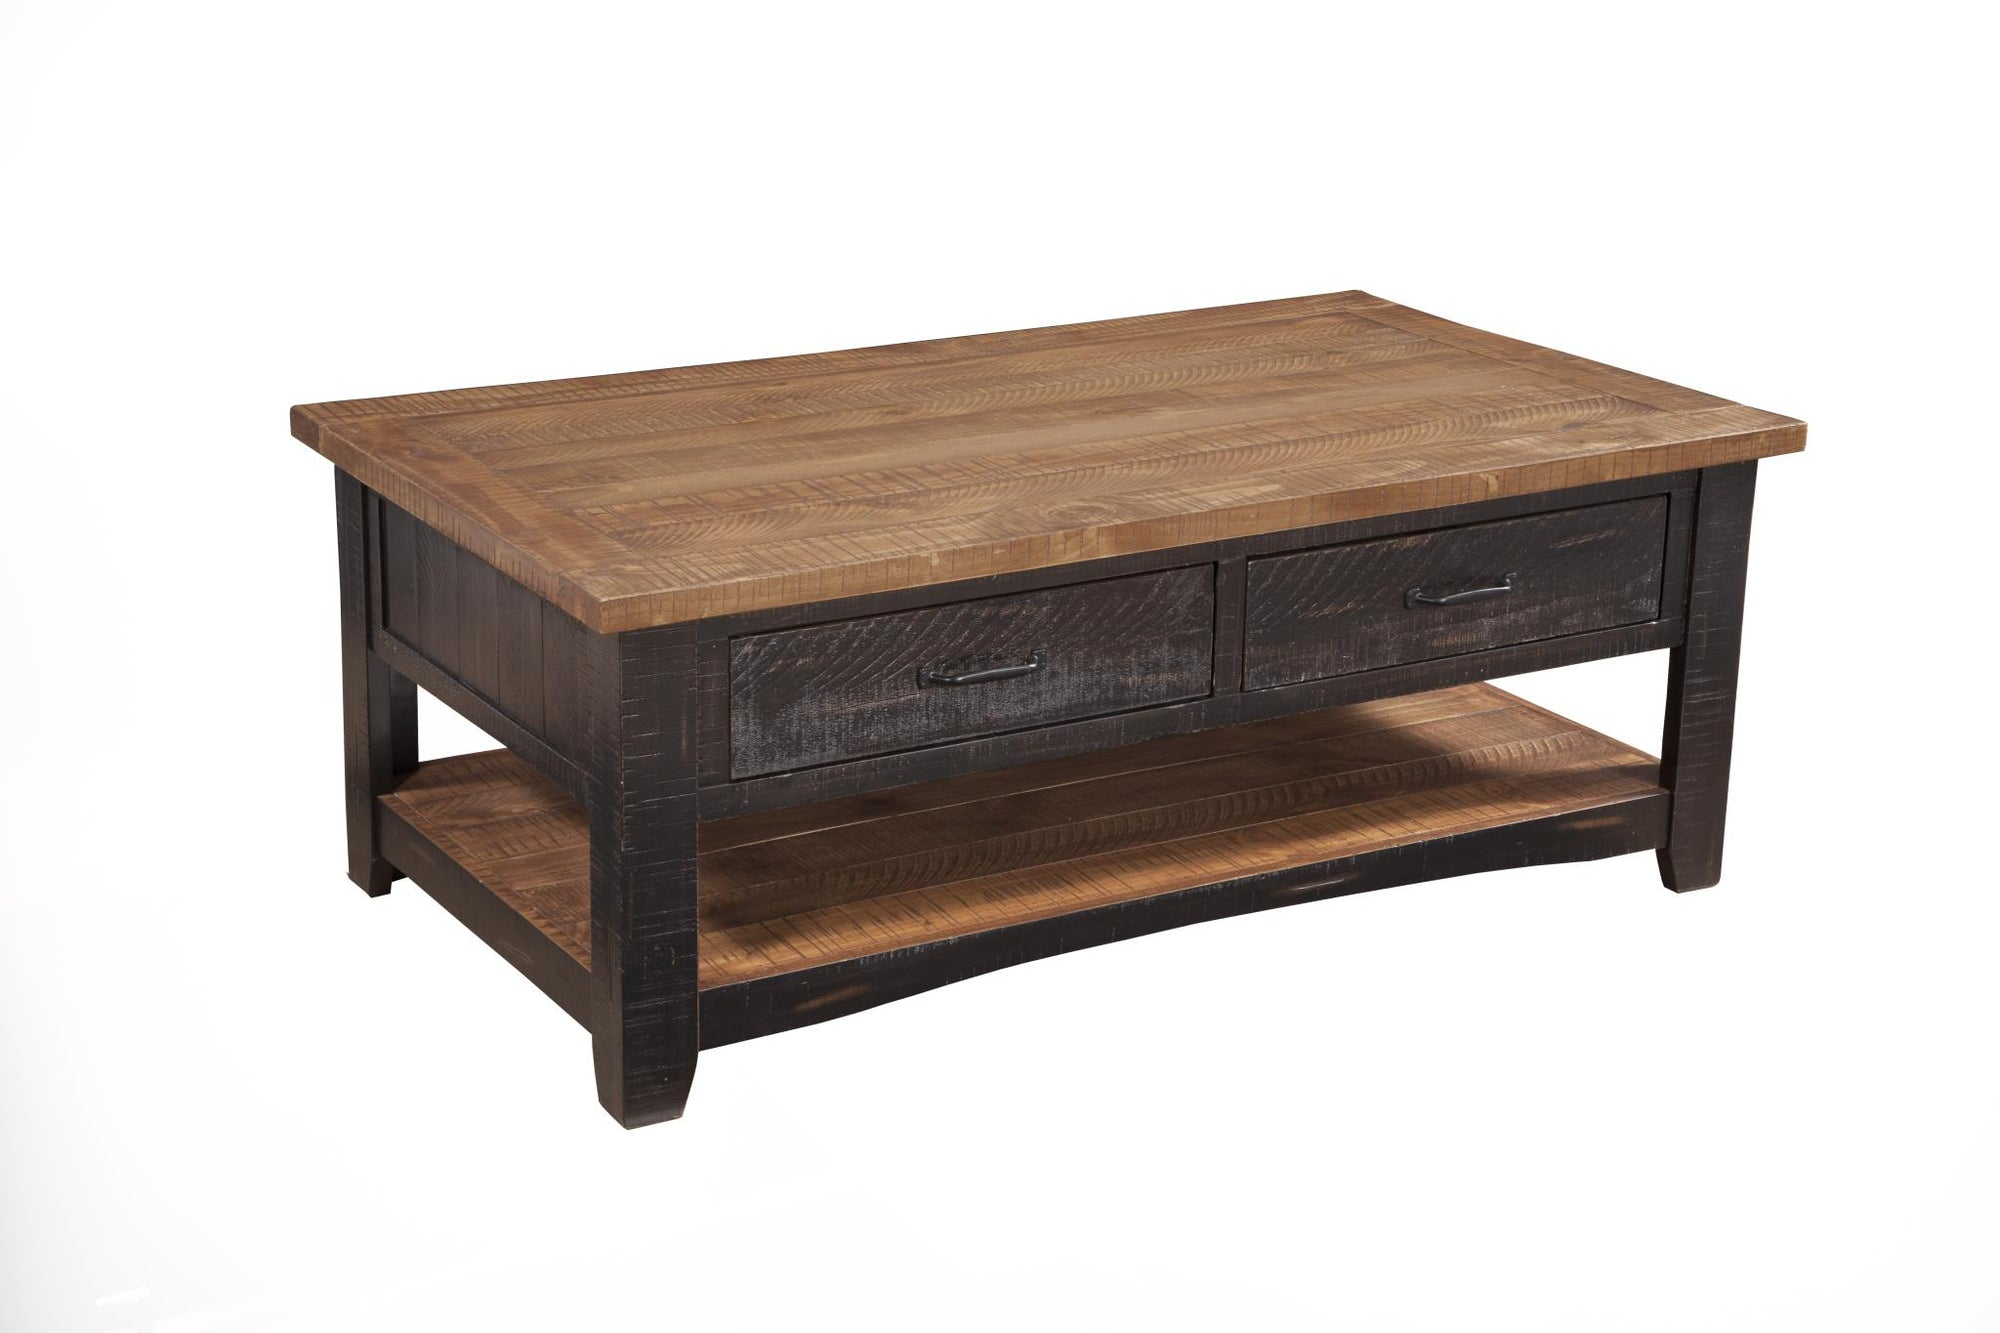 Rustic Occasional Coffee Table - Black & Honey Tabacco